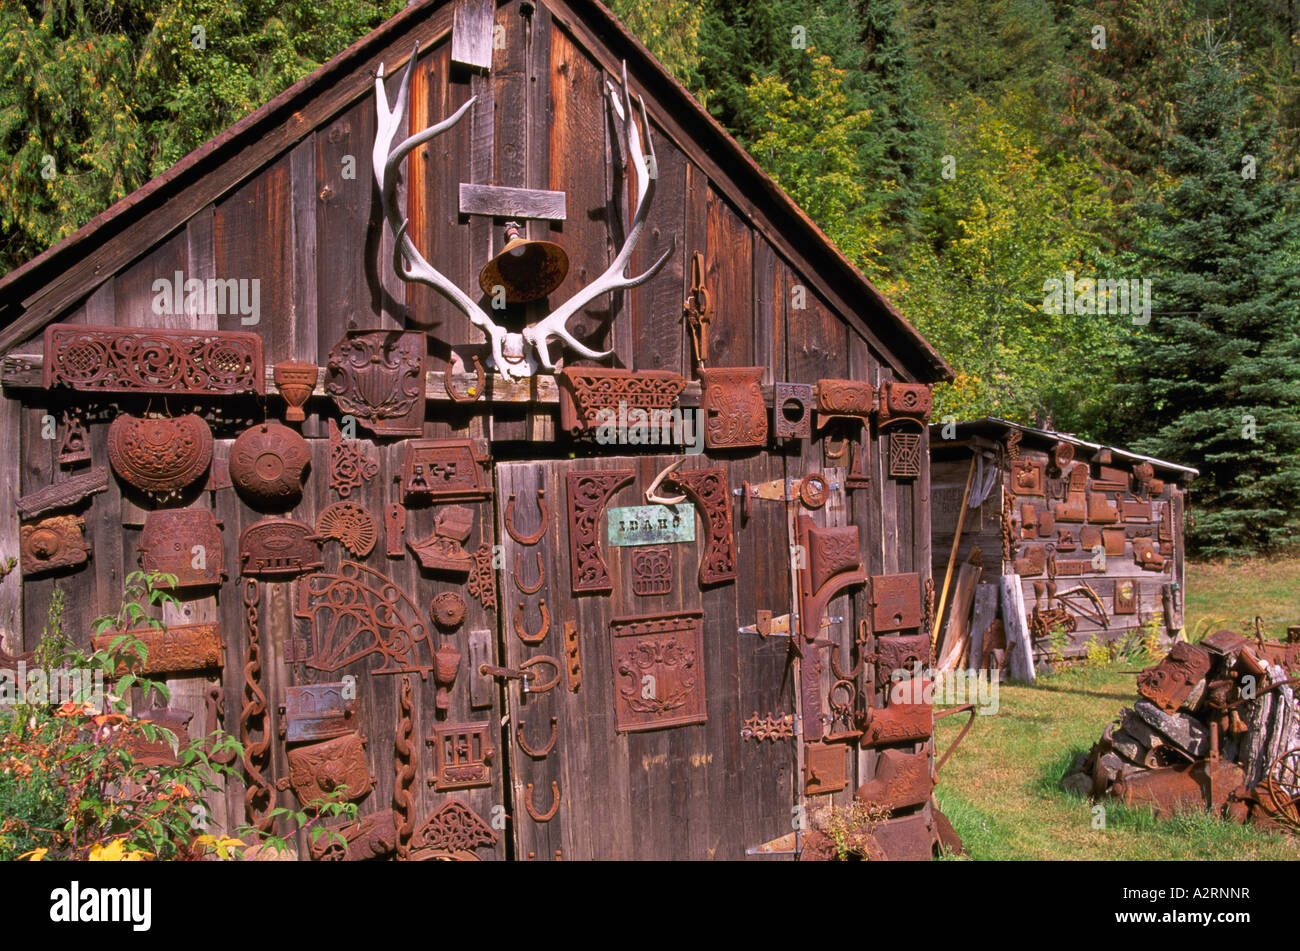 Sandon BC British Columbia Canada - Old Storage Shed in Historic u0027Silver Rushu0027 Mining Ghost Town Kootenay Region & Sandon BC British Columbia Canada - Old Storage Shed in Historic ...